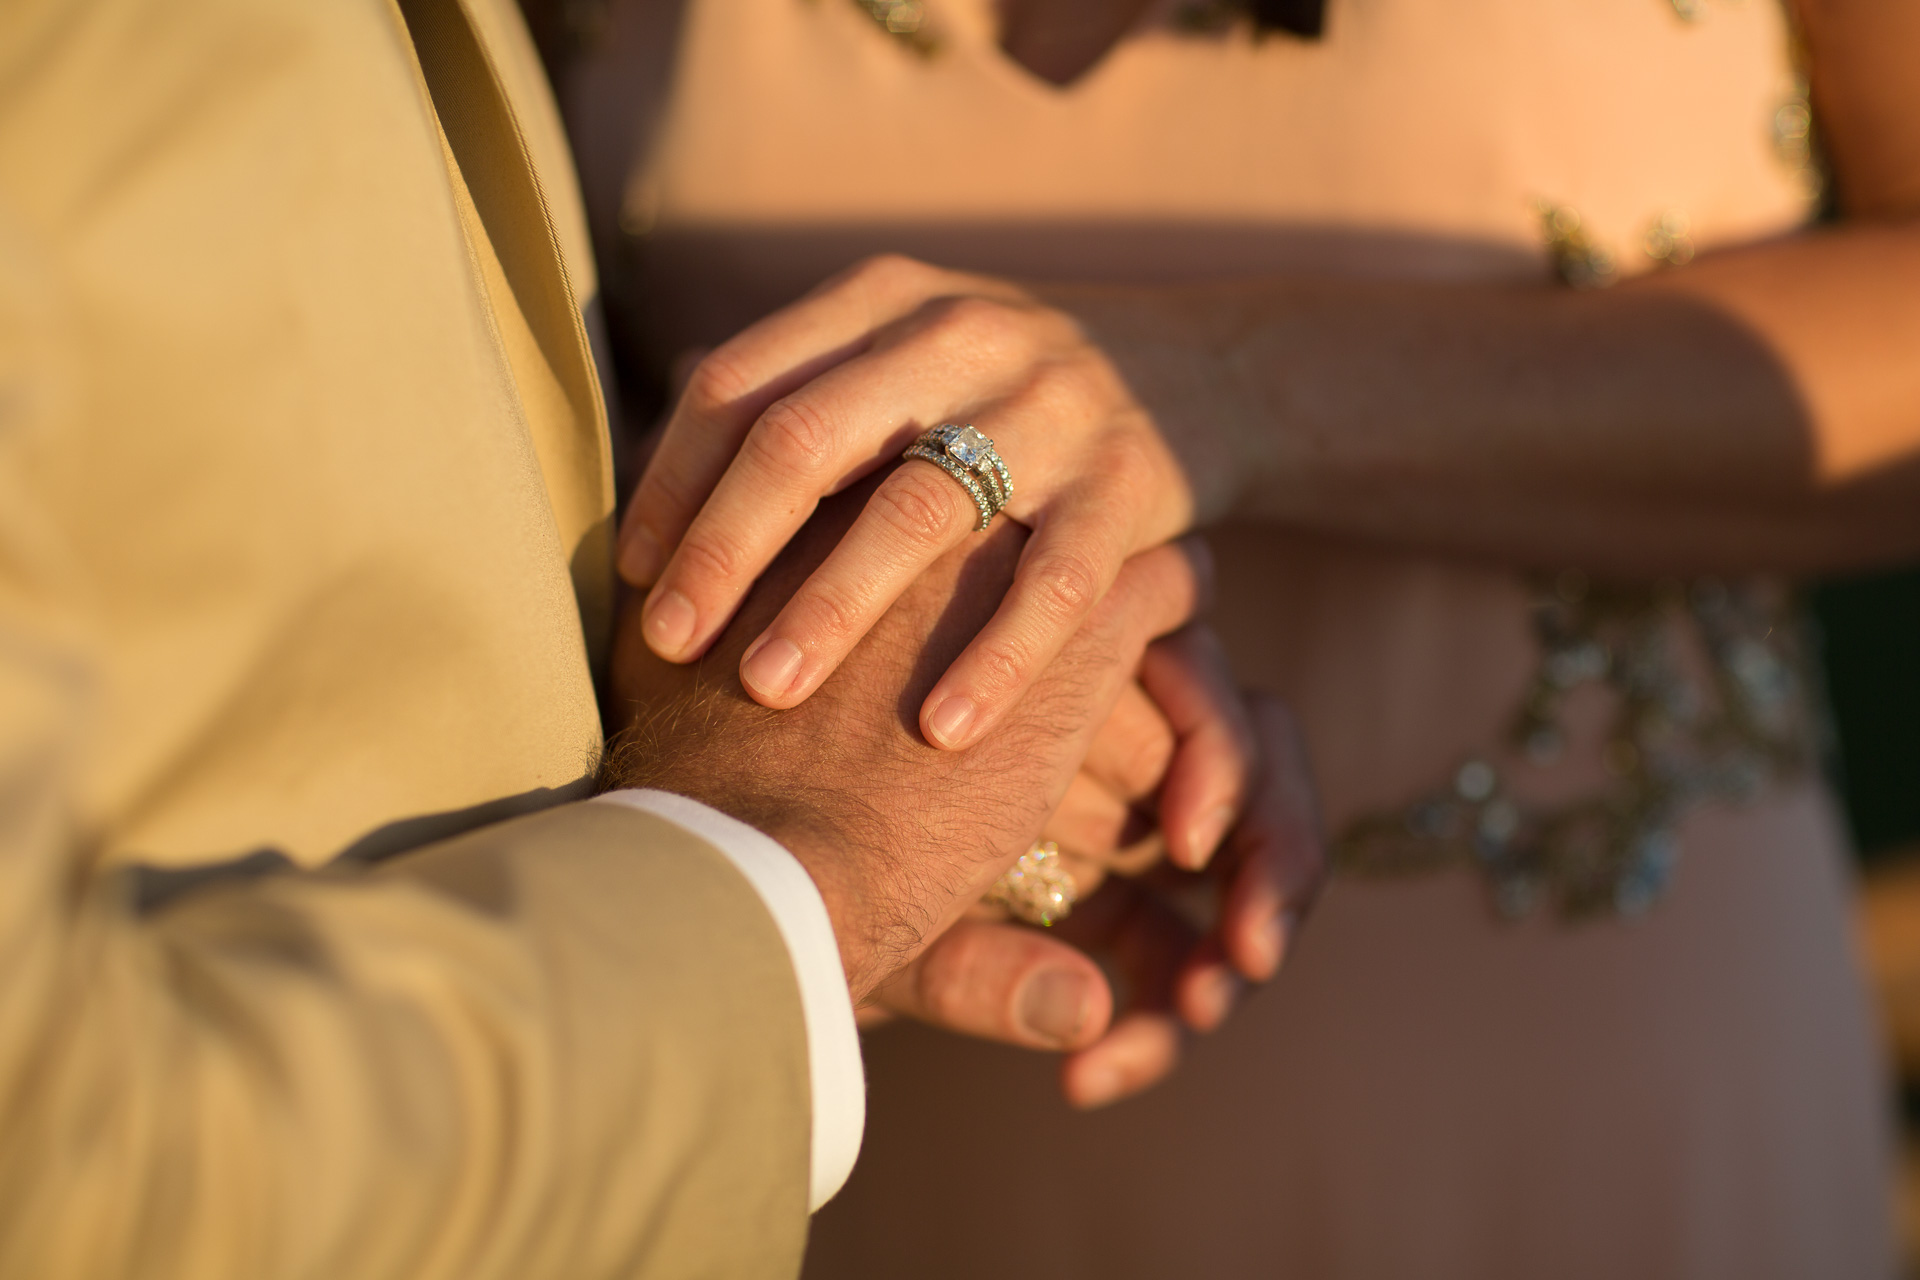 Casali Di Casole Detail Wedding Photo - Tuscany, IT | The bride and groom grasp each other's hands in a show of support